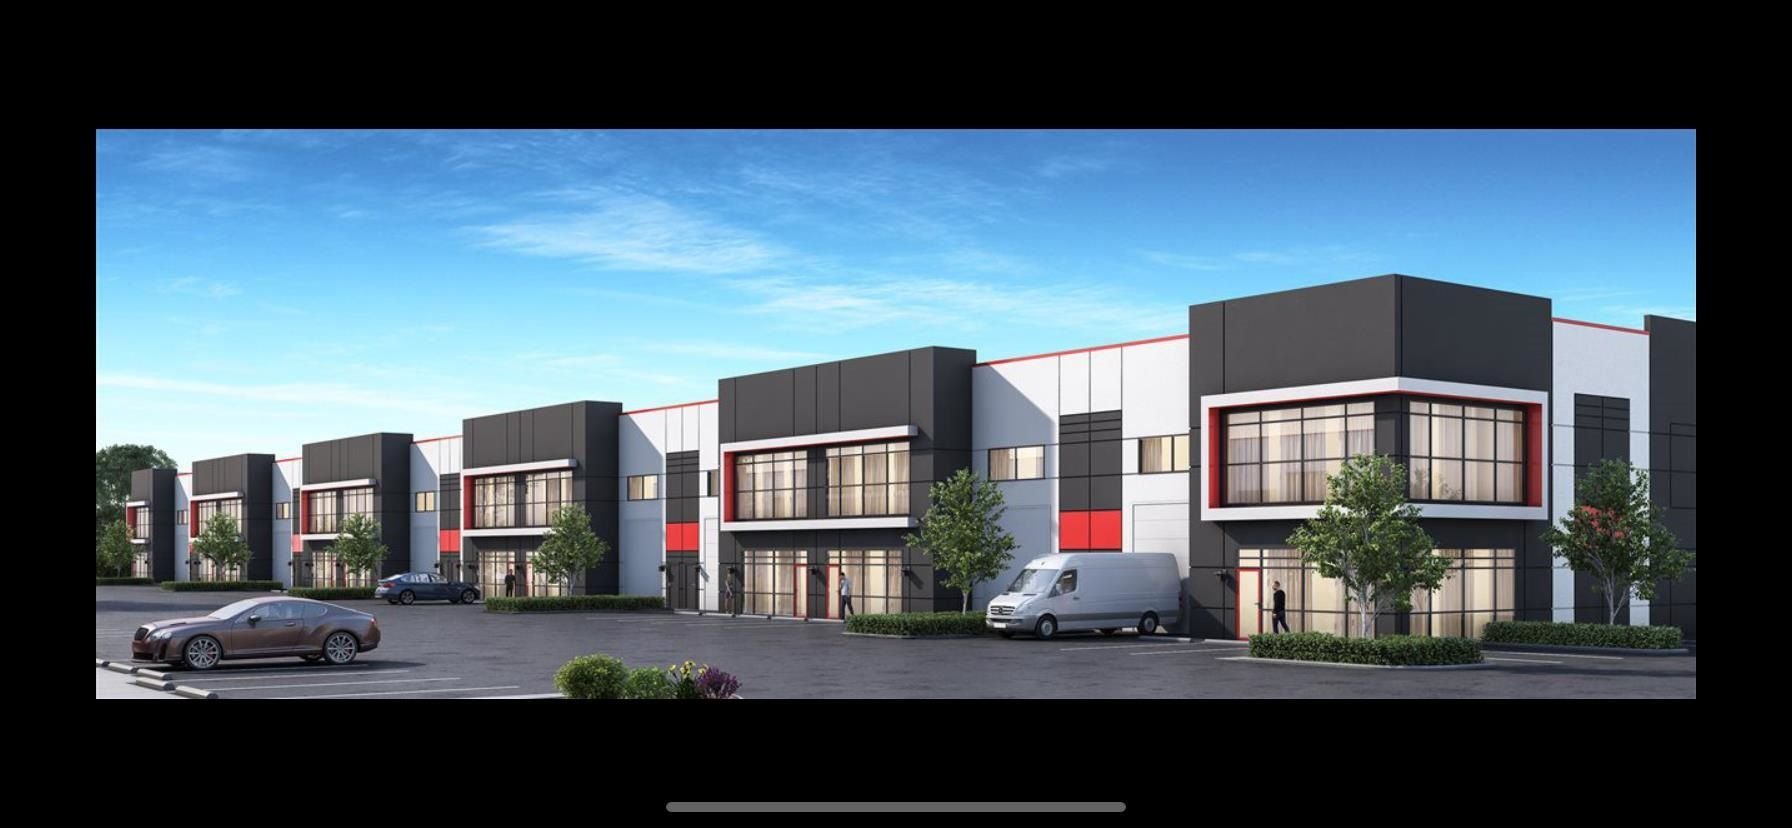 Main Photo: C115 6286 203 Street in Langley: Willoughby Heights Industrial for lease : MLS®# C8039705